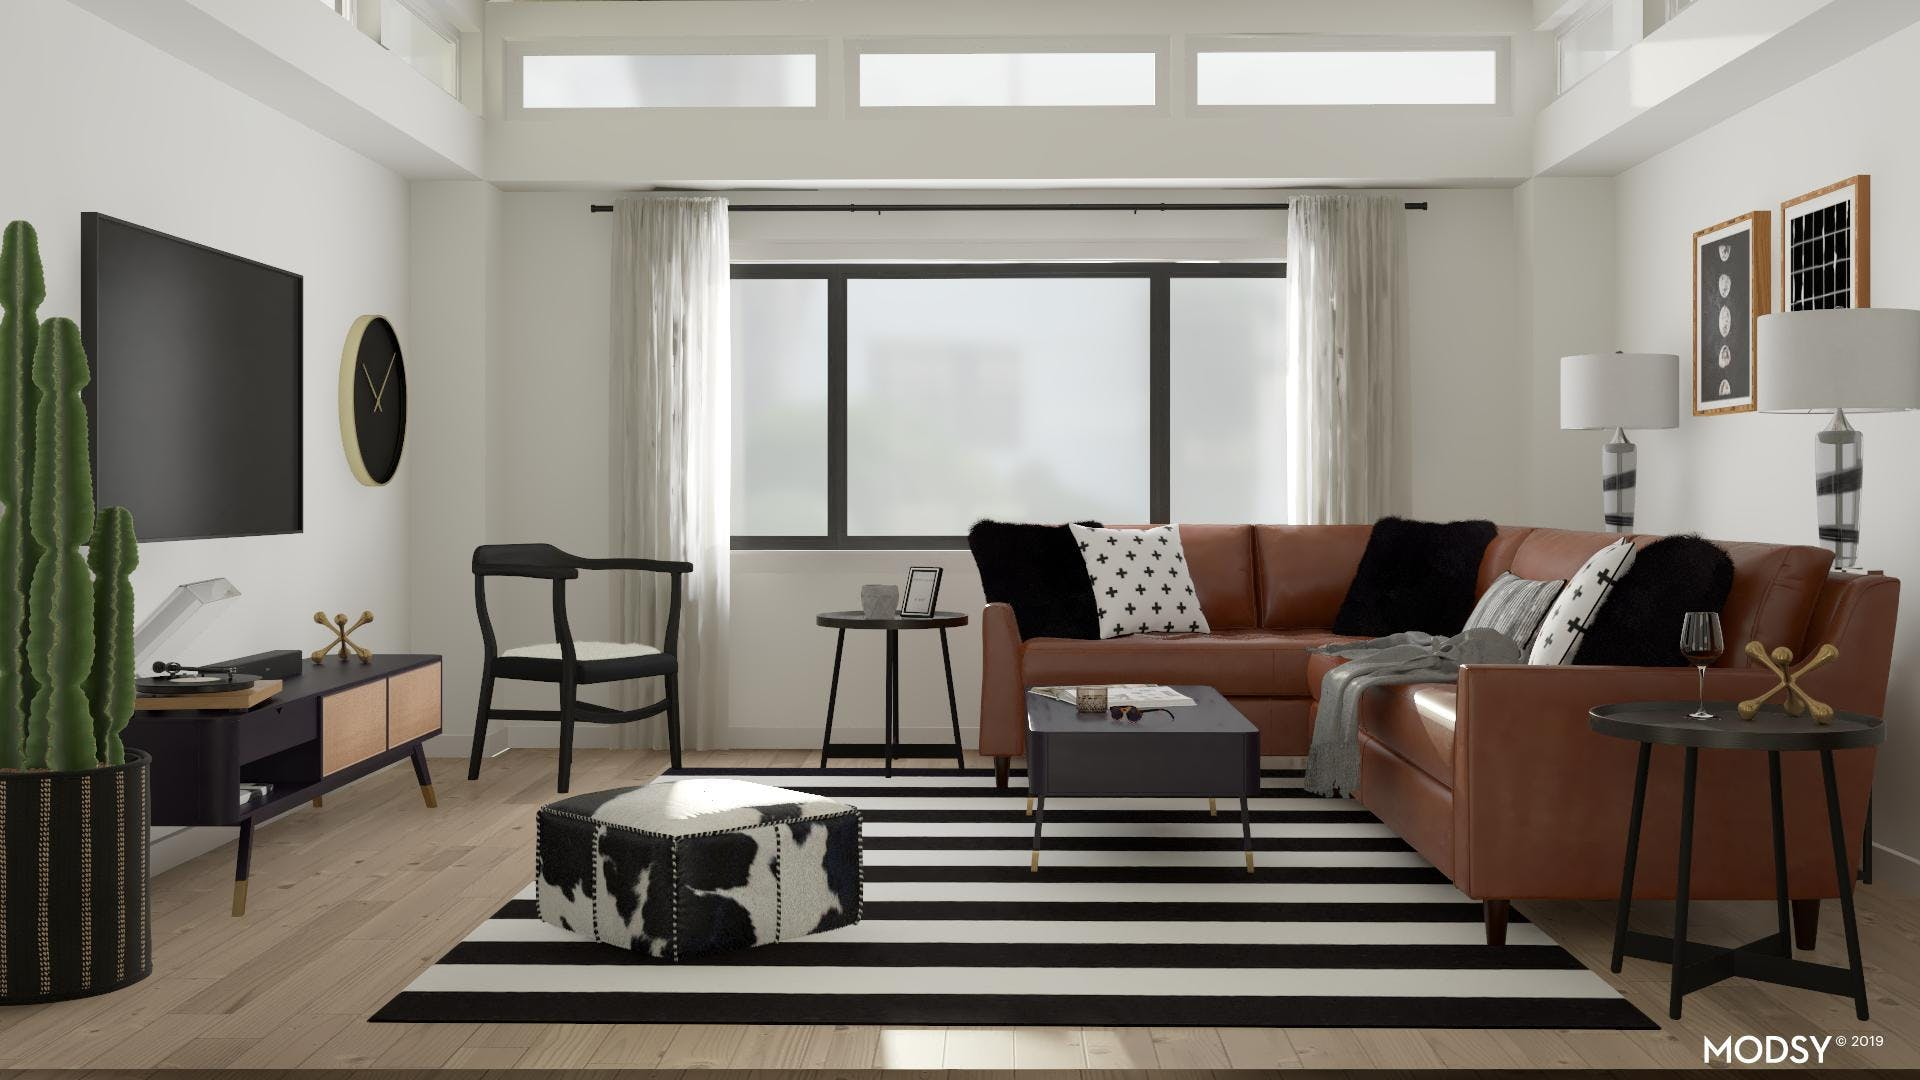 A Mid-Century Modern Living Room: Black And White Approach